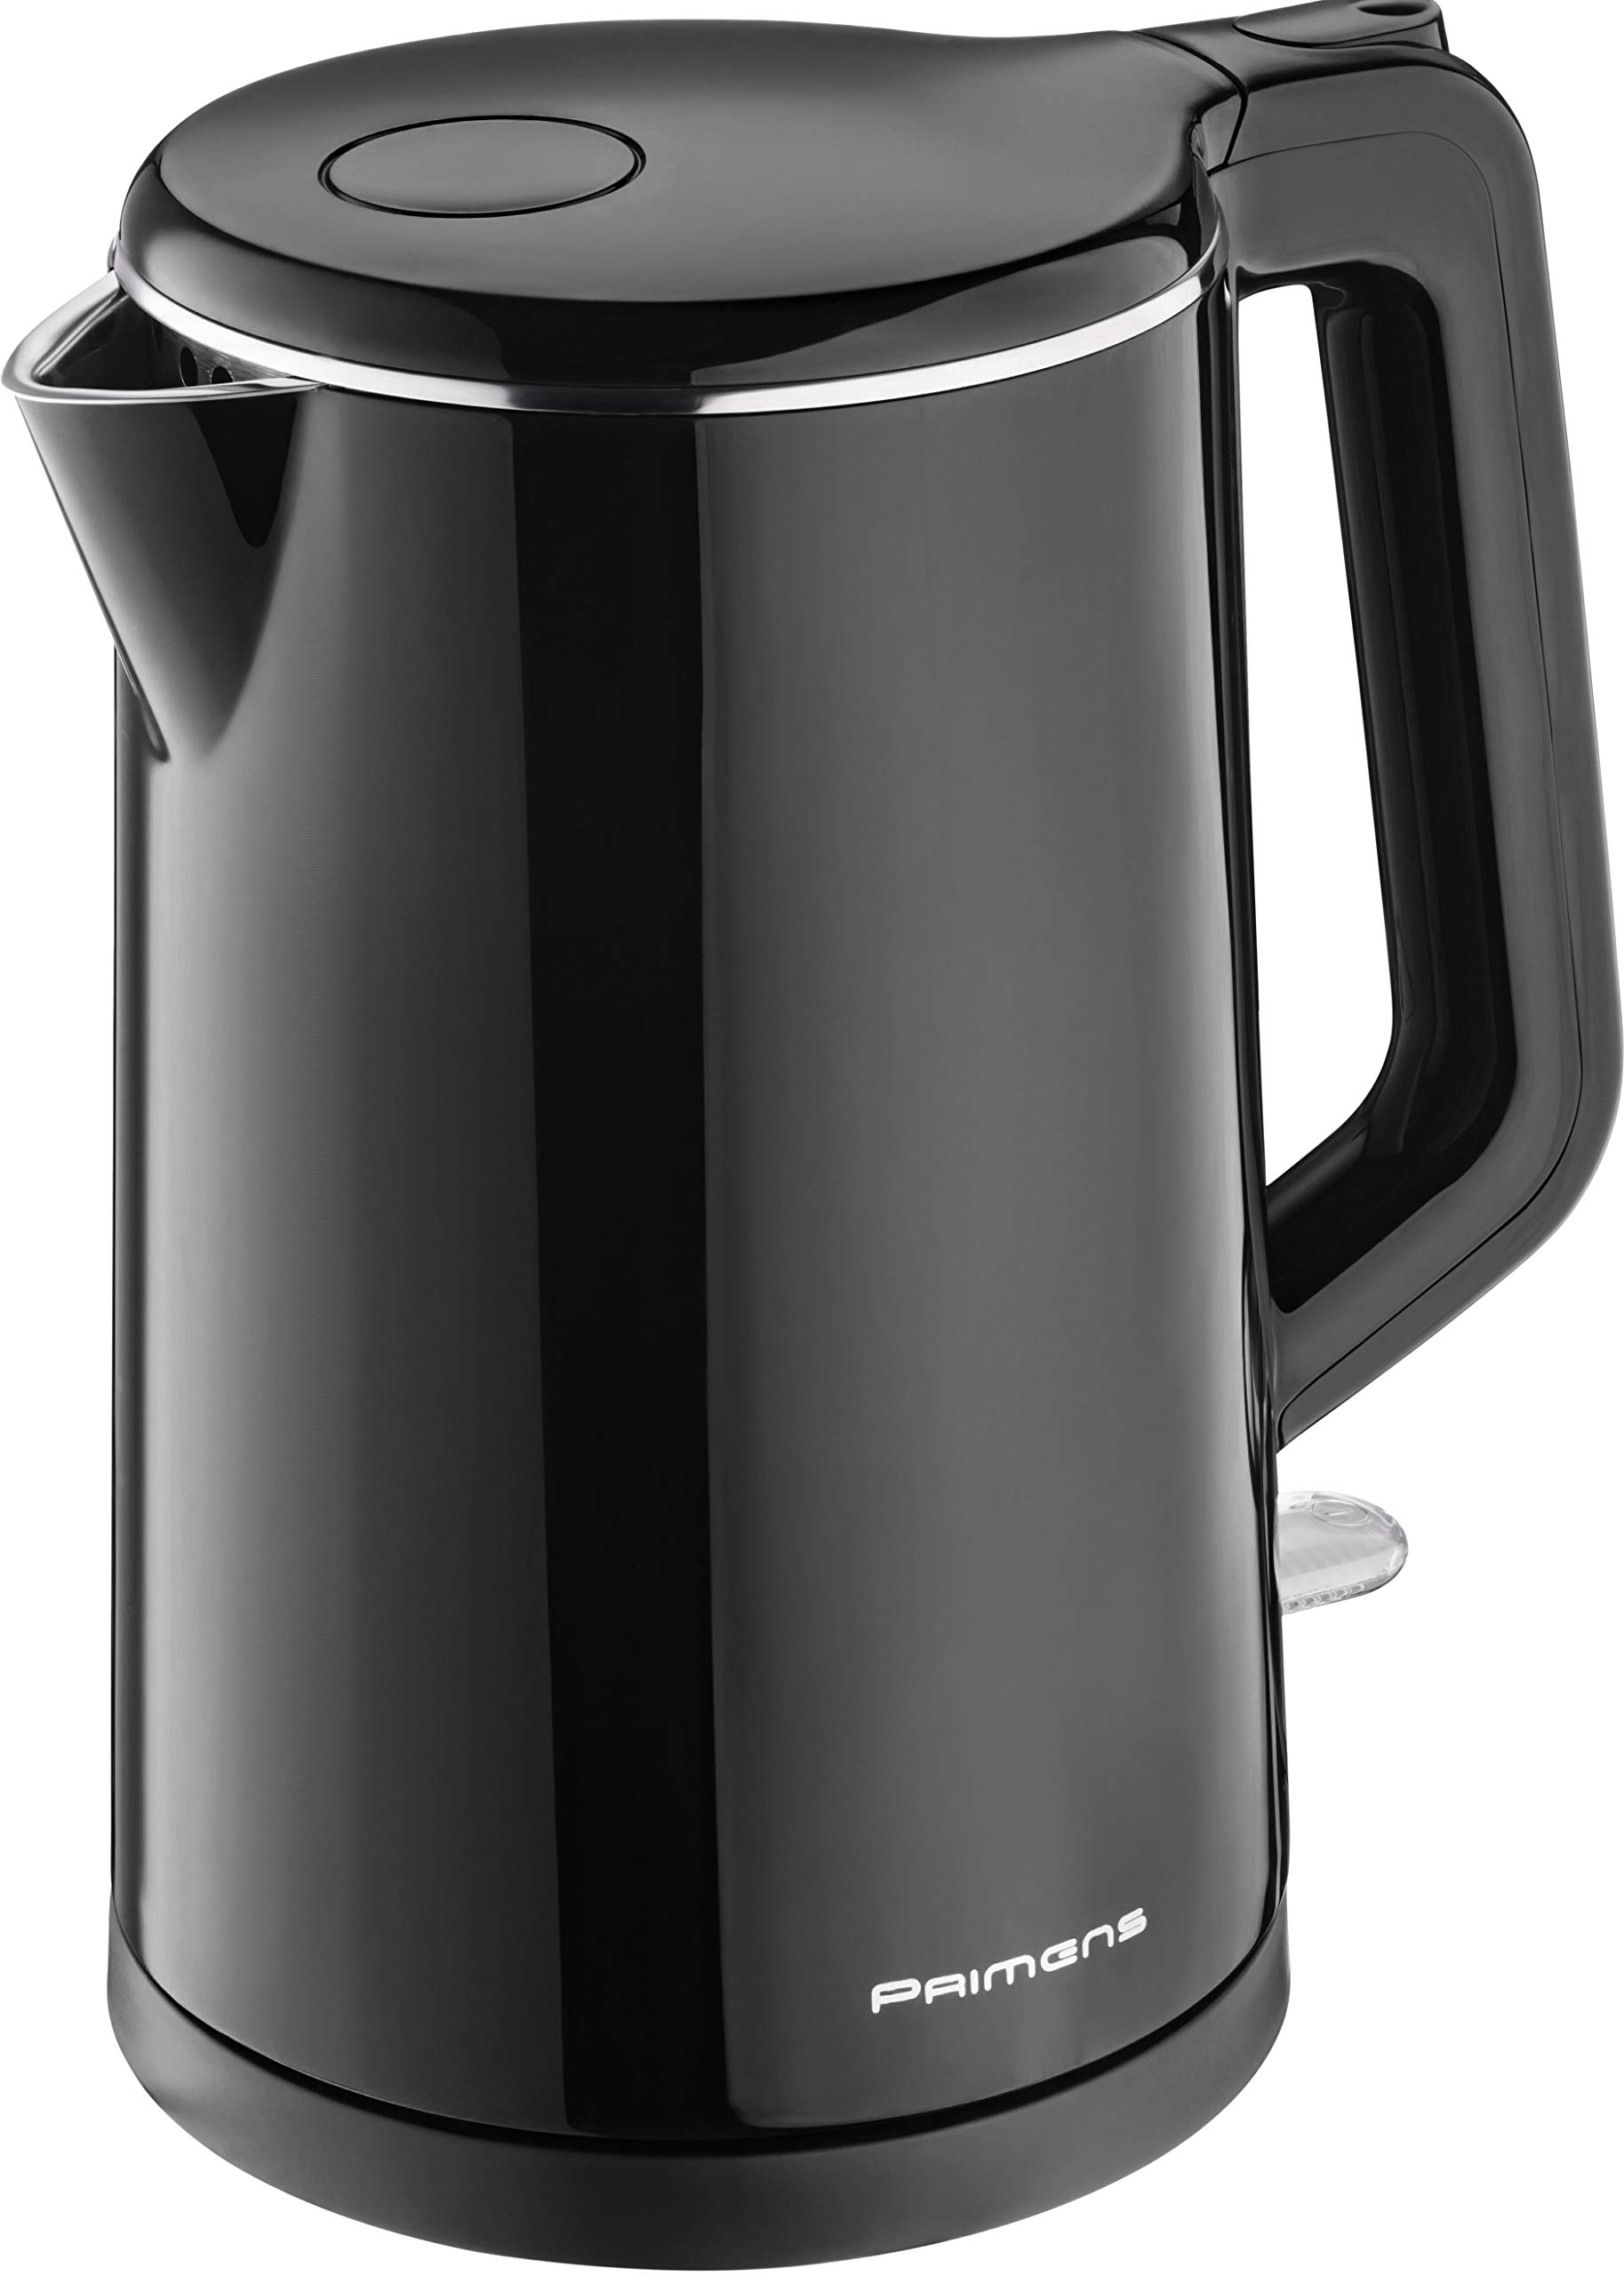 Electric Water Kettle Automatic Shut Off, Double Wall Cool Touch, Fast Boil, Portable Hot Water Kettle, 1,5 L